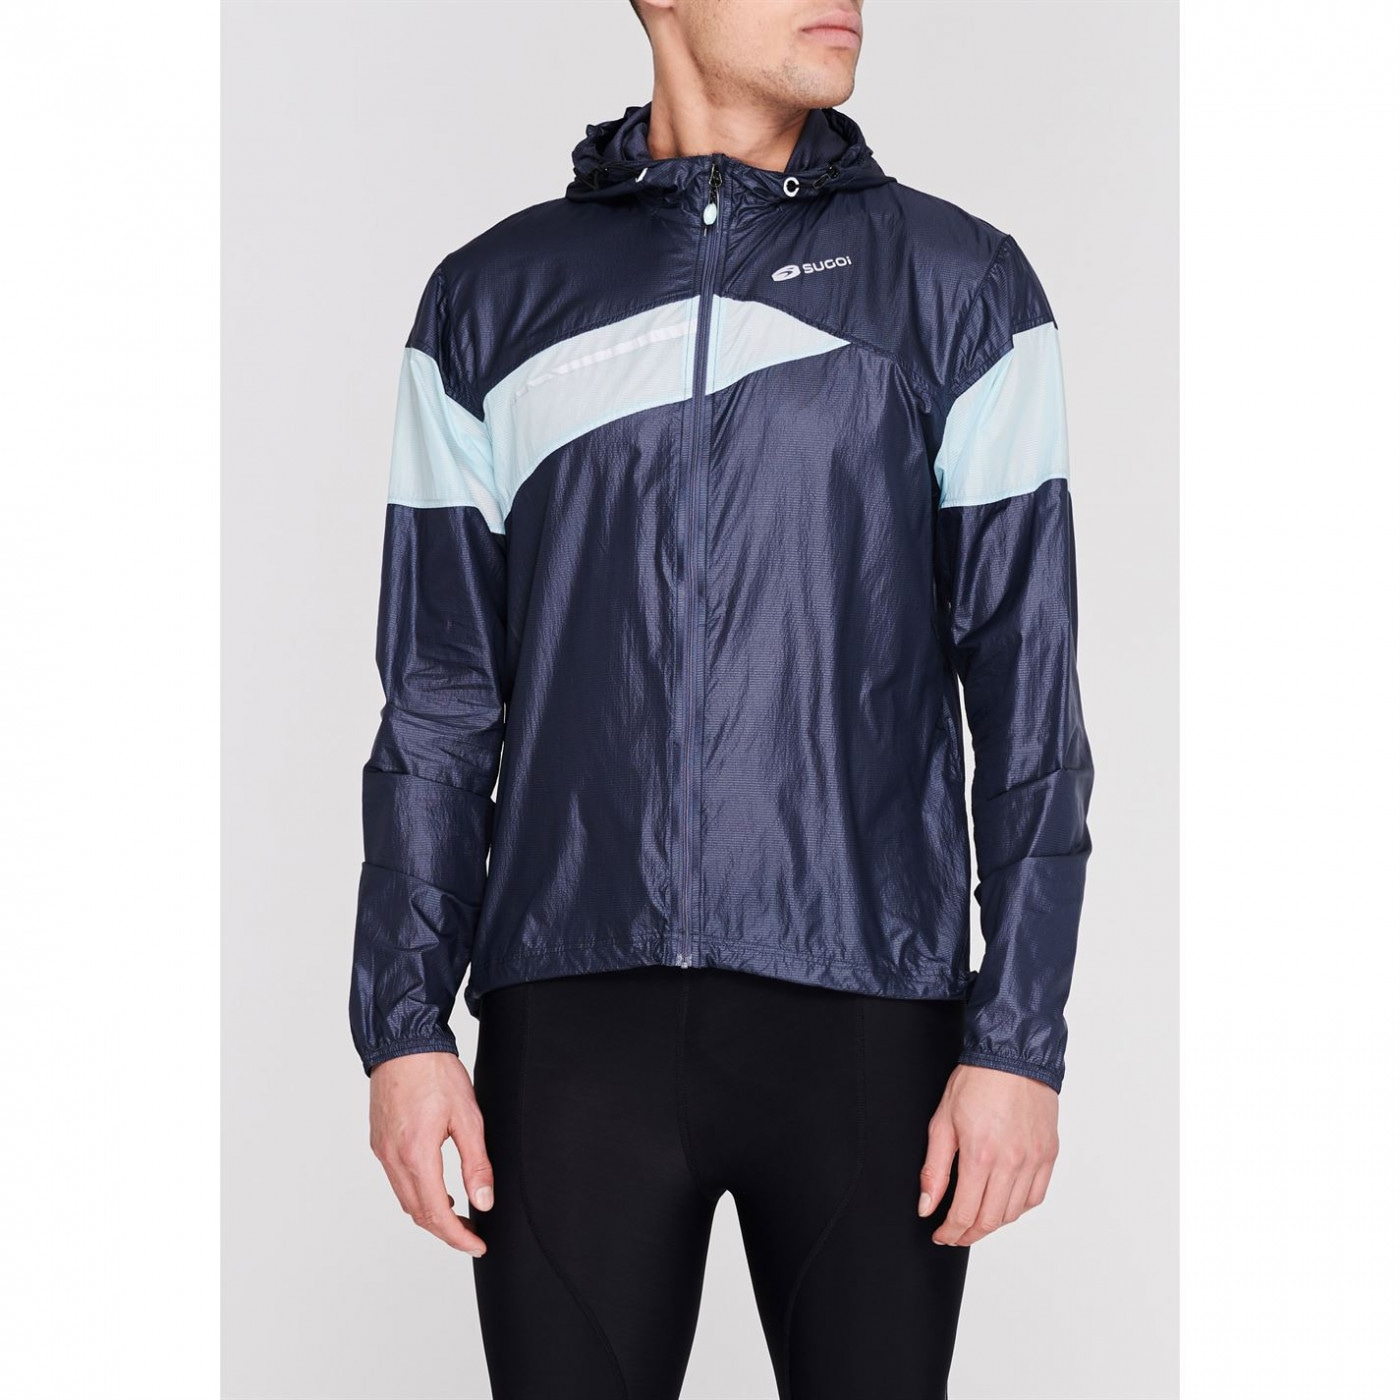 Sugoi Run For Cover Jacket Mens